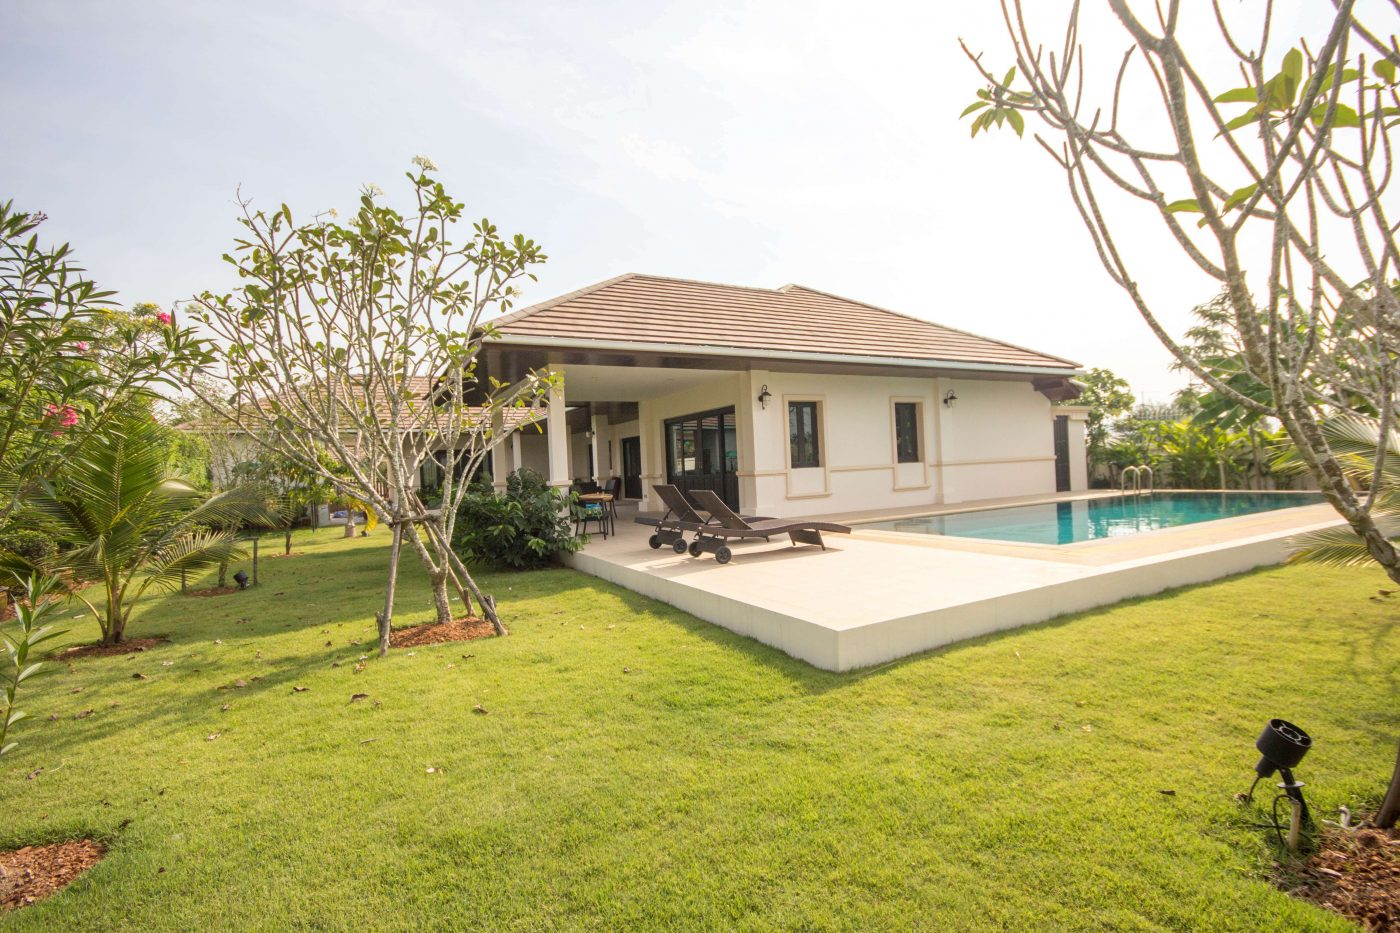 Luxury Bali Style Villa With Private Pool for sale Soi 88 at Hua Hin District, Prachuap Khiri Khan, Thailand